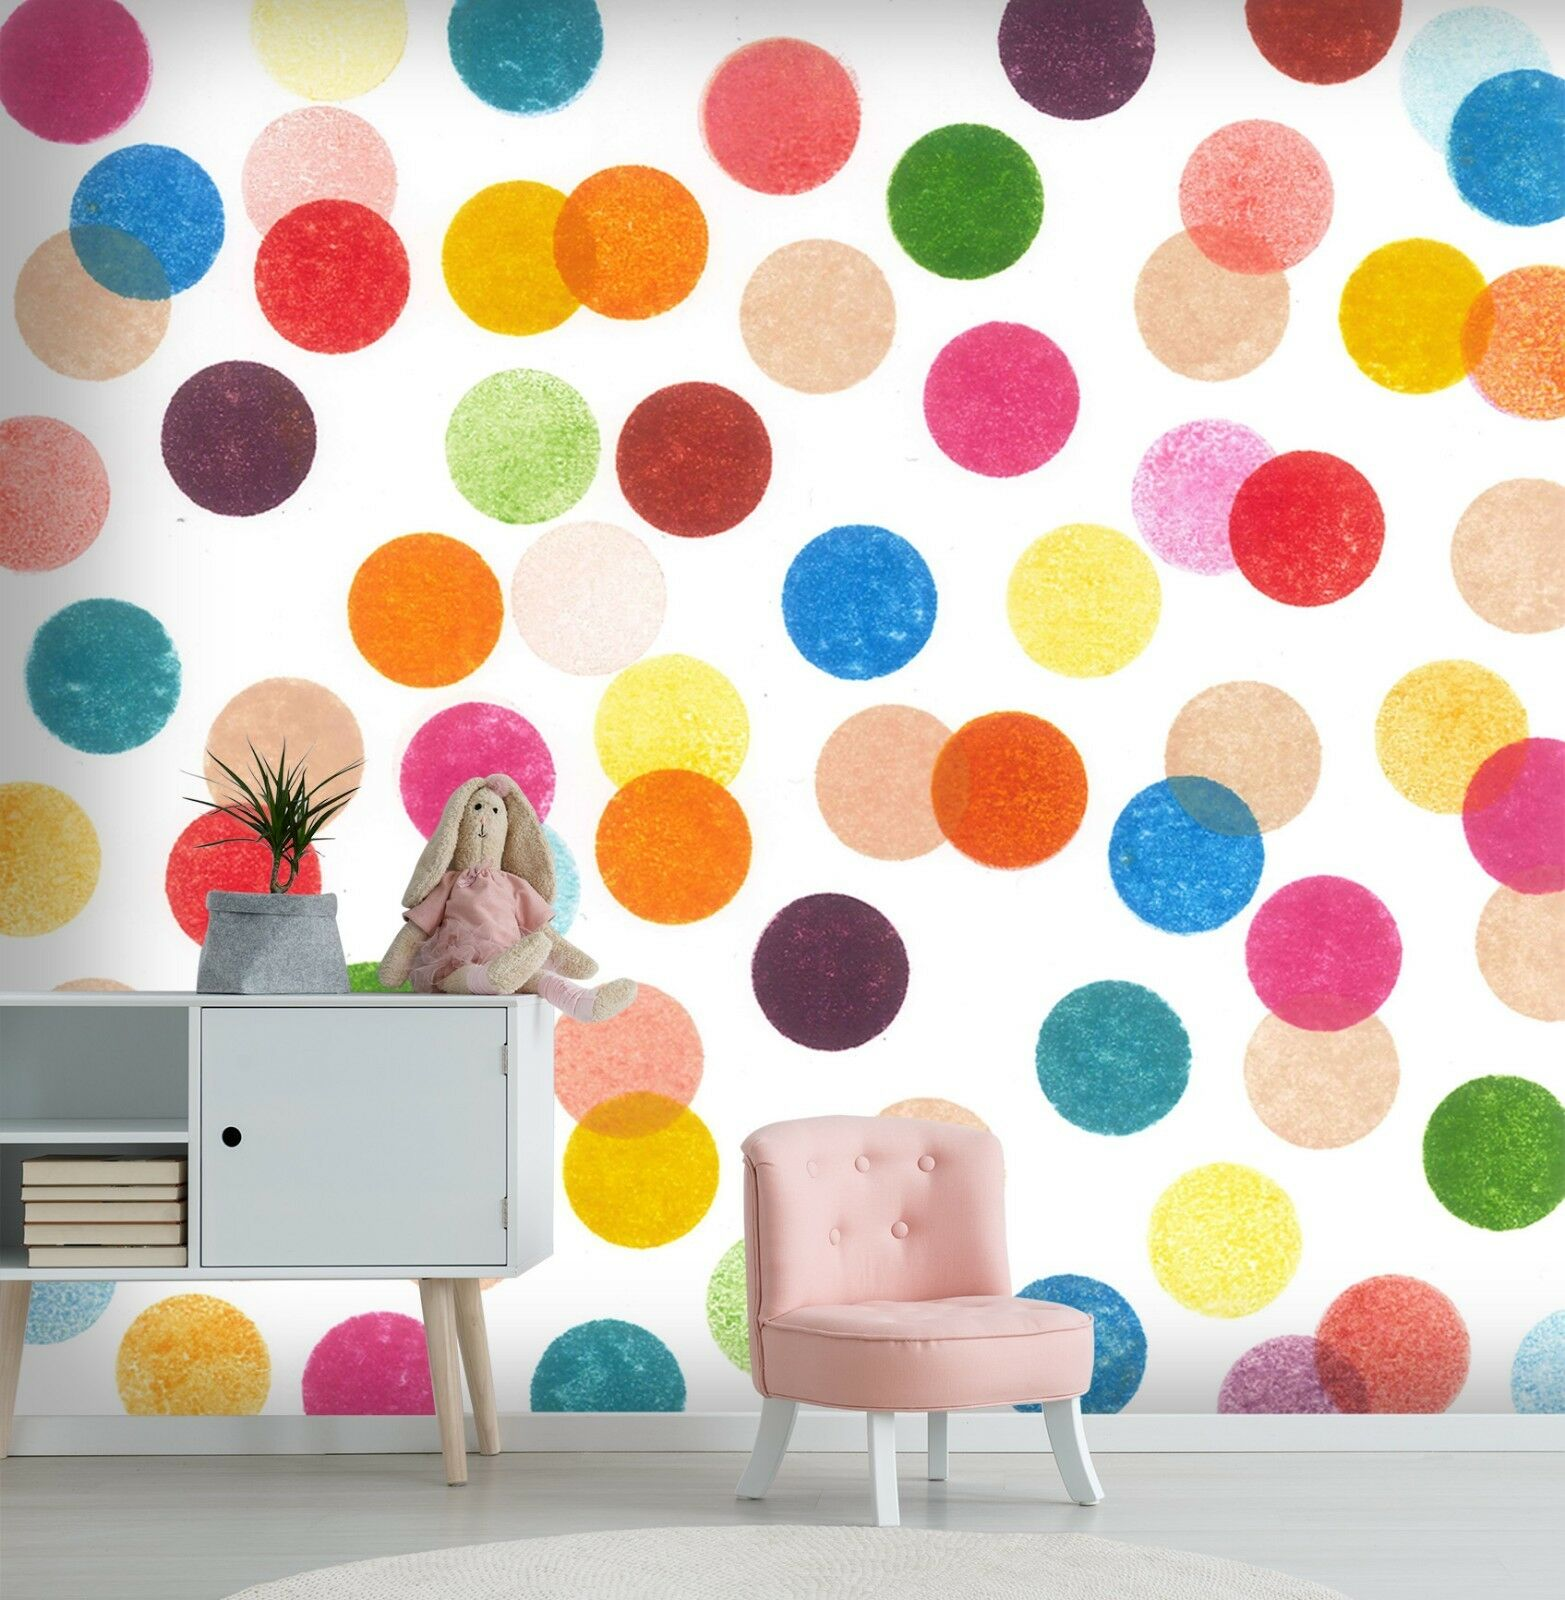 3D Red Dot  7021 Wall Paper Print Wall Decal Deco Indoor Wall Murals US Summer